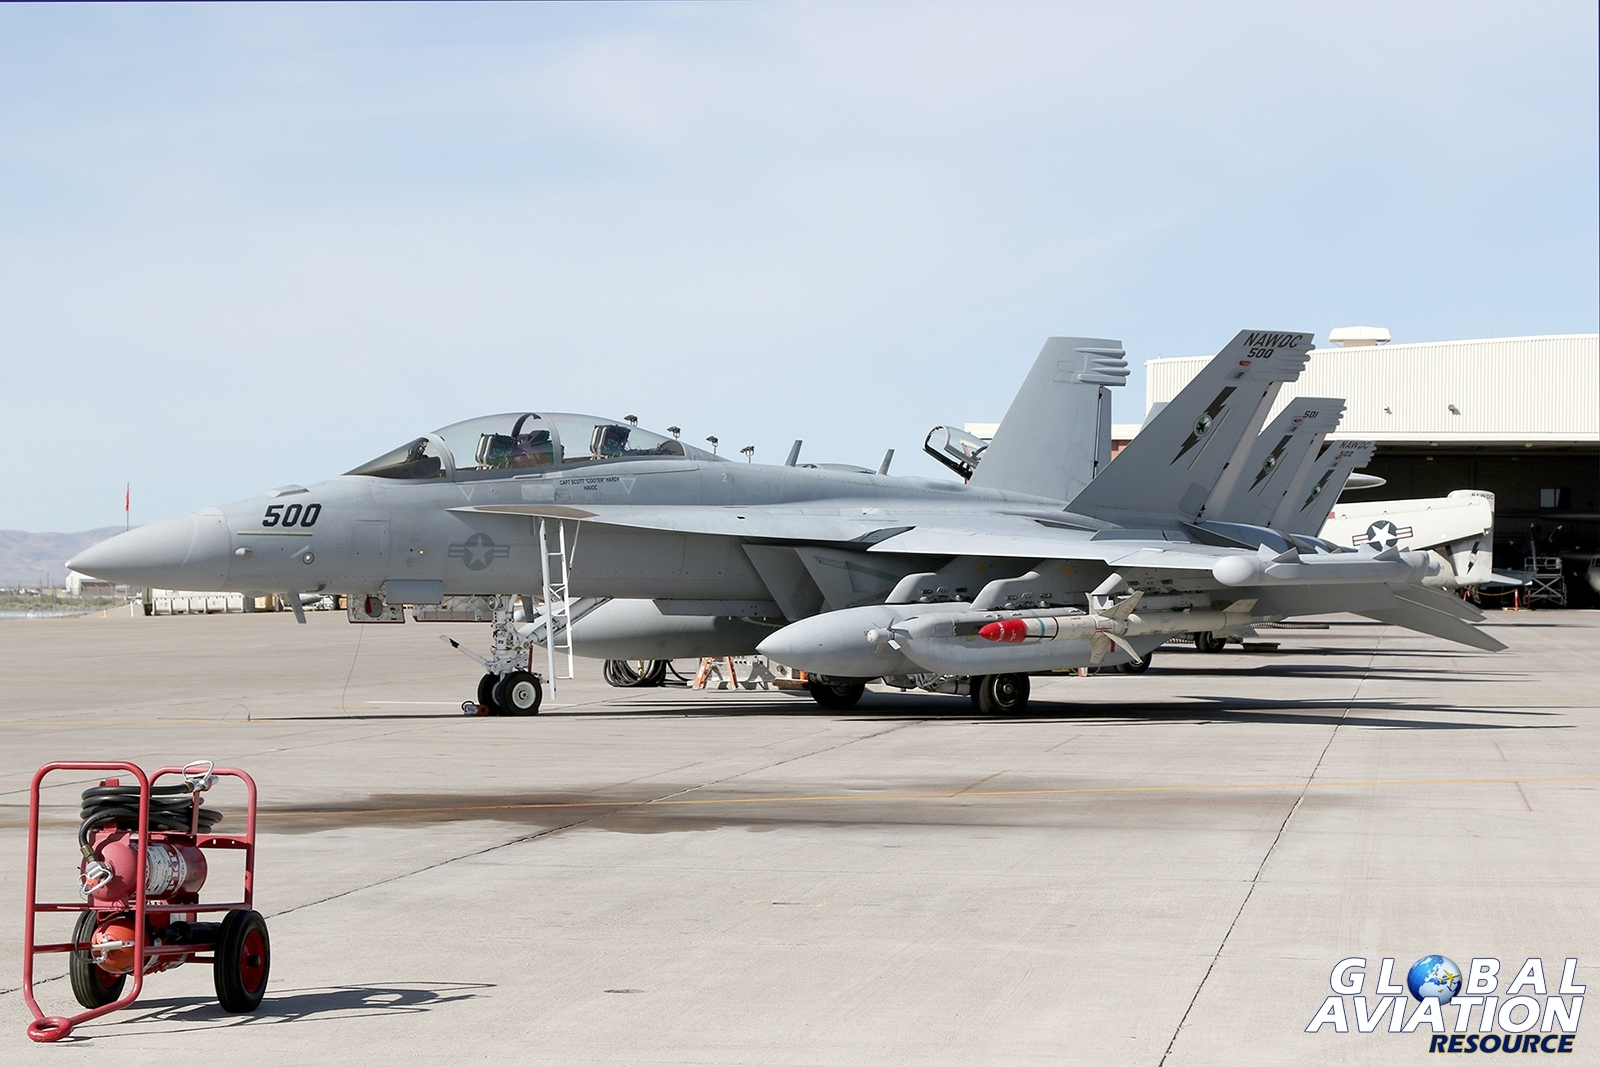 The NAWDC EA-18G Growler line on the Fallon ramp © Paul Dunn - Global Aviation Resource